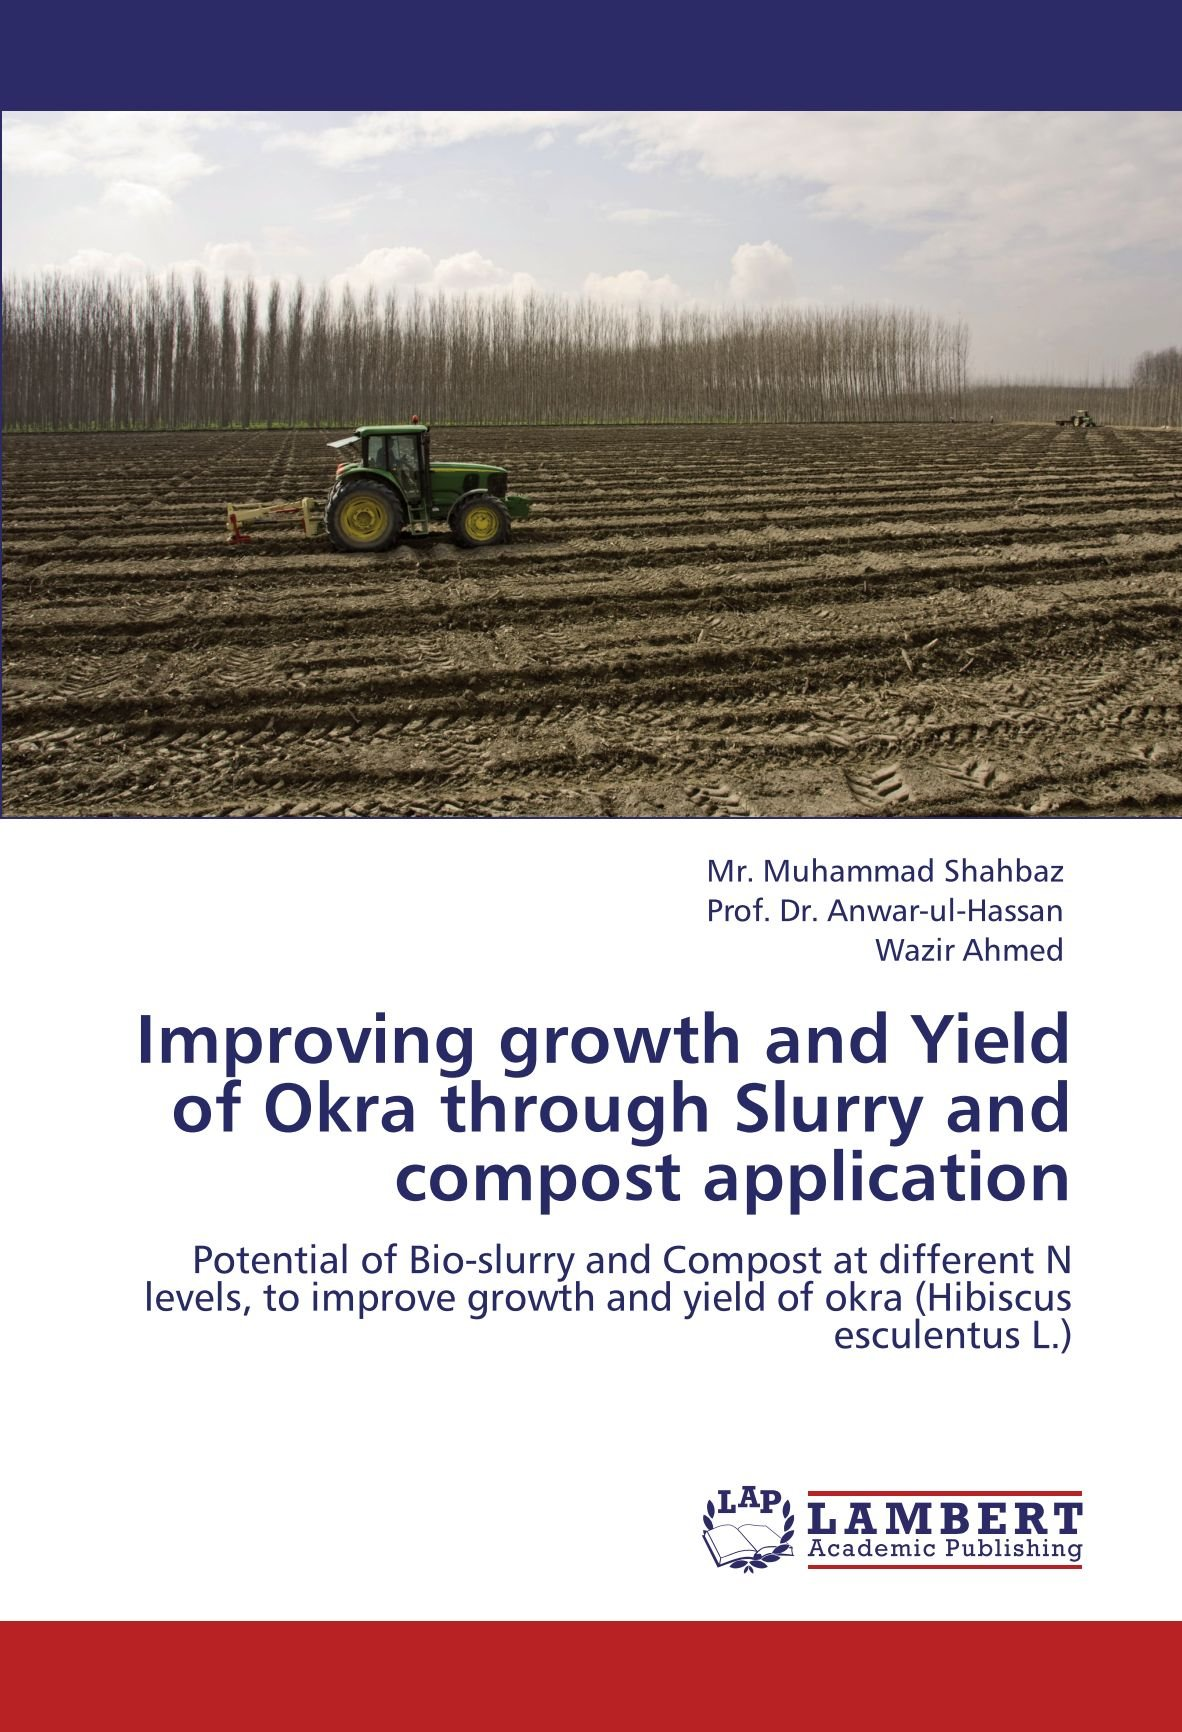 Improving growth and Yield of Okra through Slurry and compost application: Potential of Bio-slurry and Compost at different N levels, to improve growth and yield of okra (Hibiscus esculentus L.) PDF